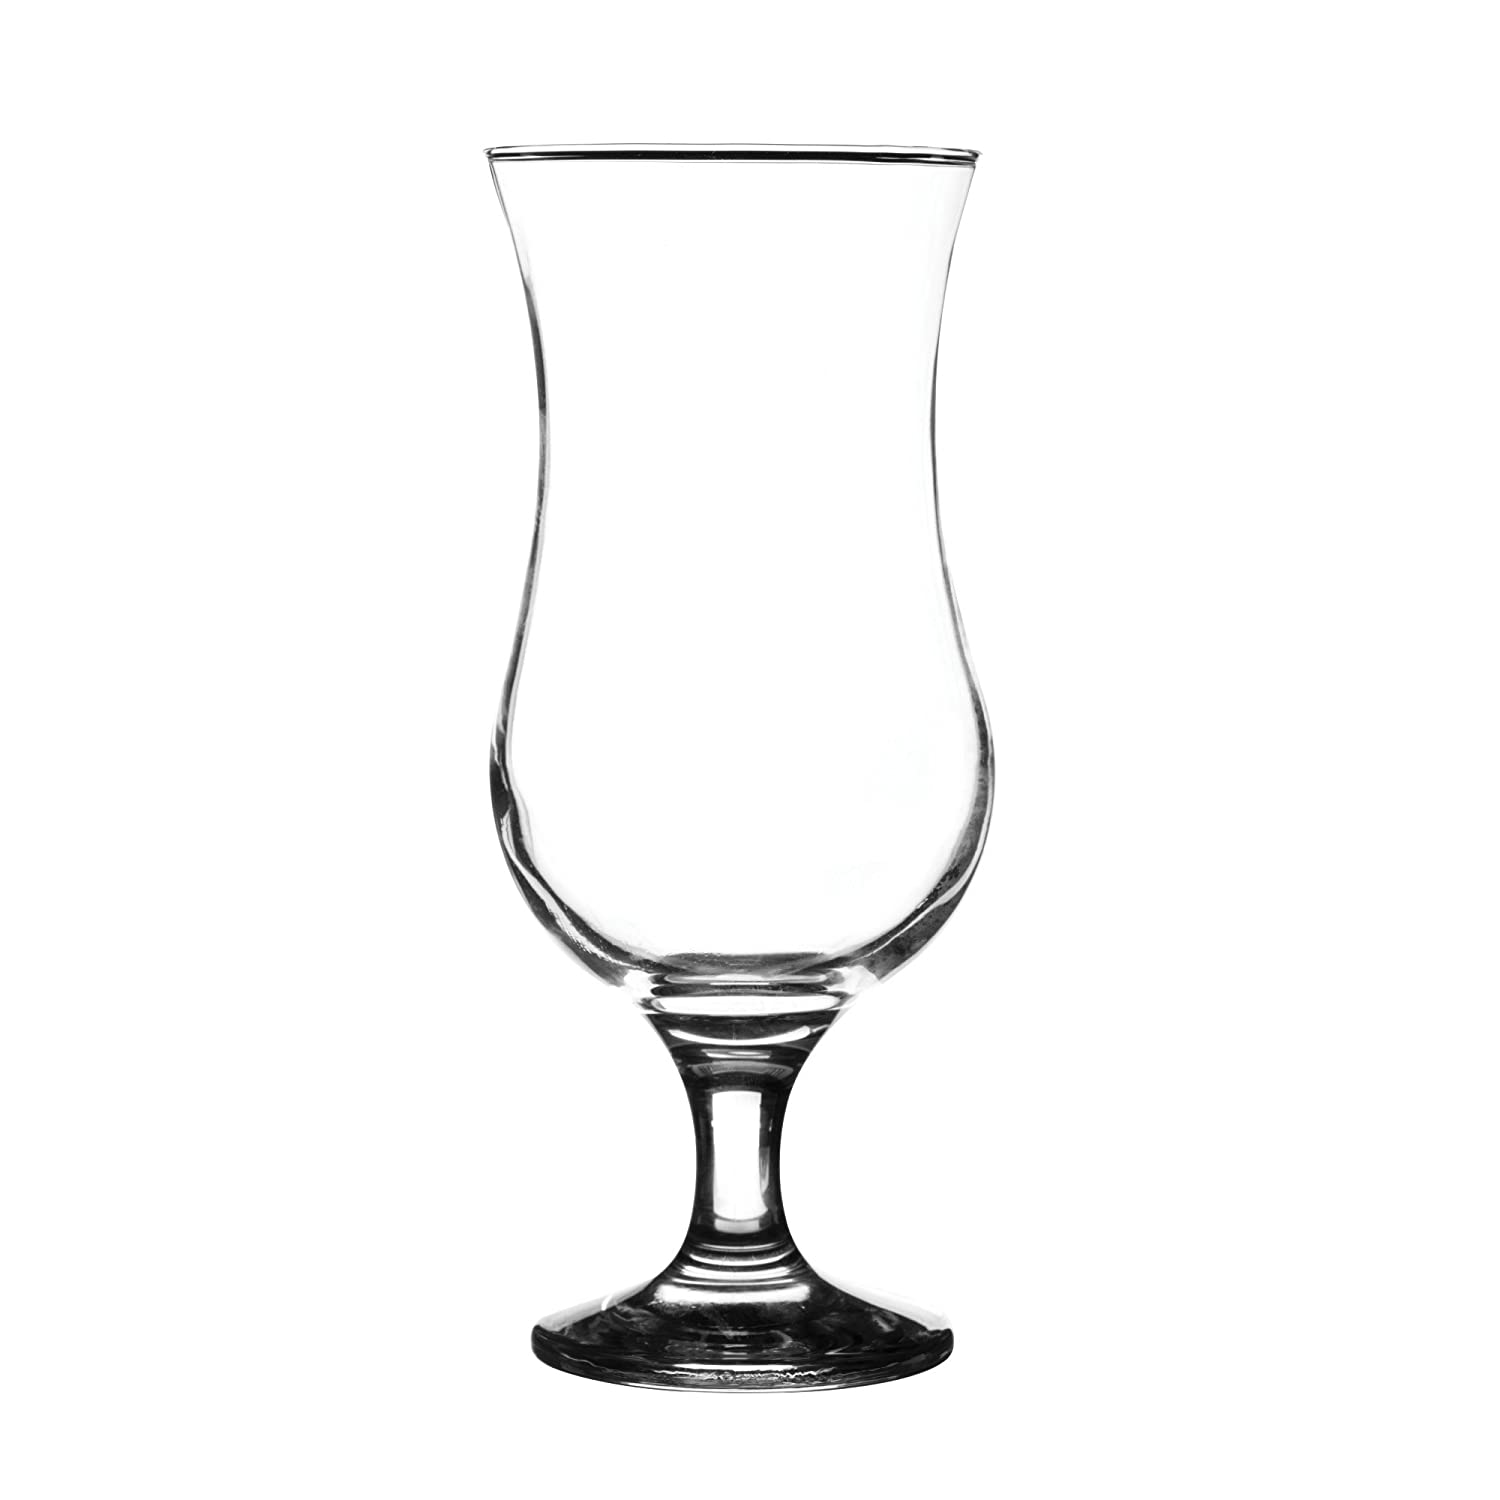 ENTERTAIN SET OF 2 42CL COCKTAIL GLASSES Rayware 0041.605